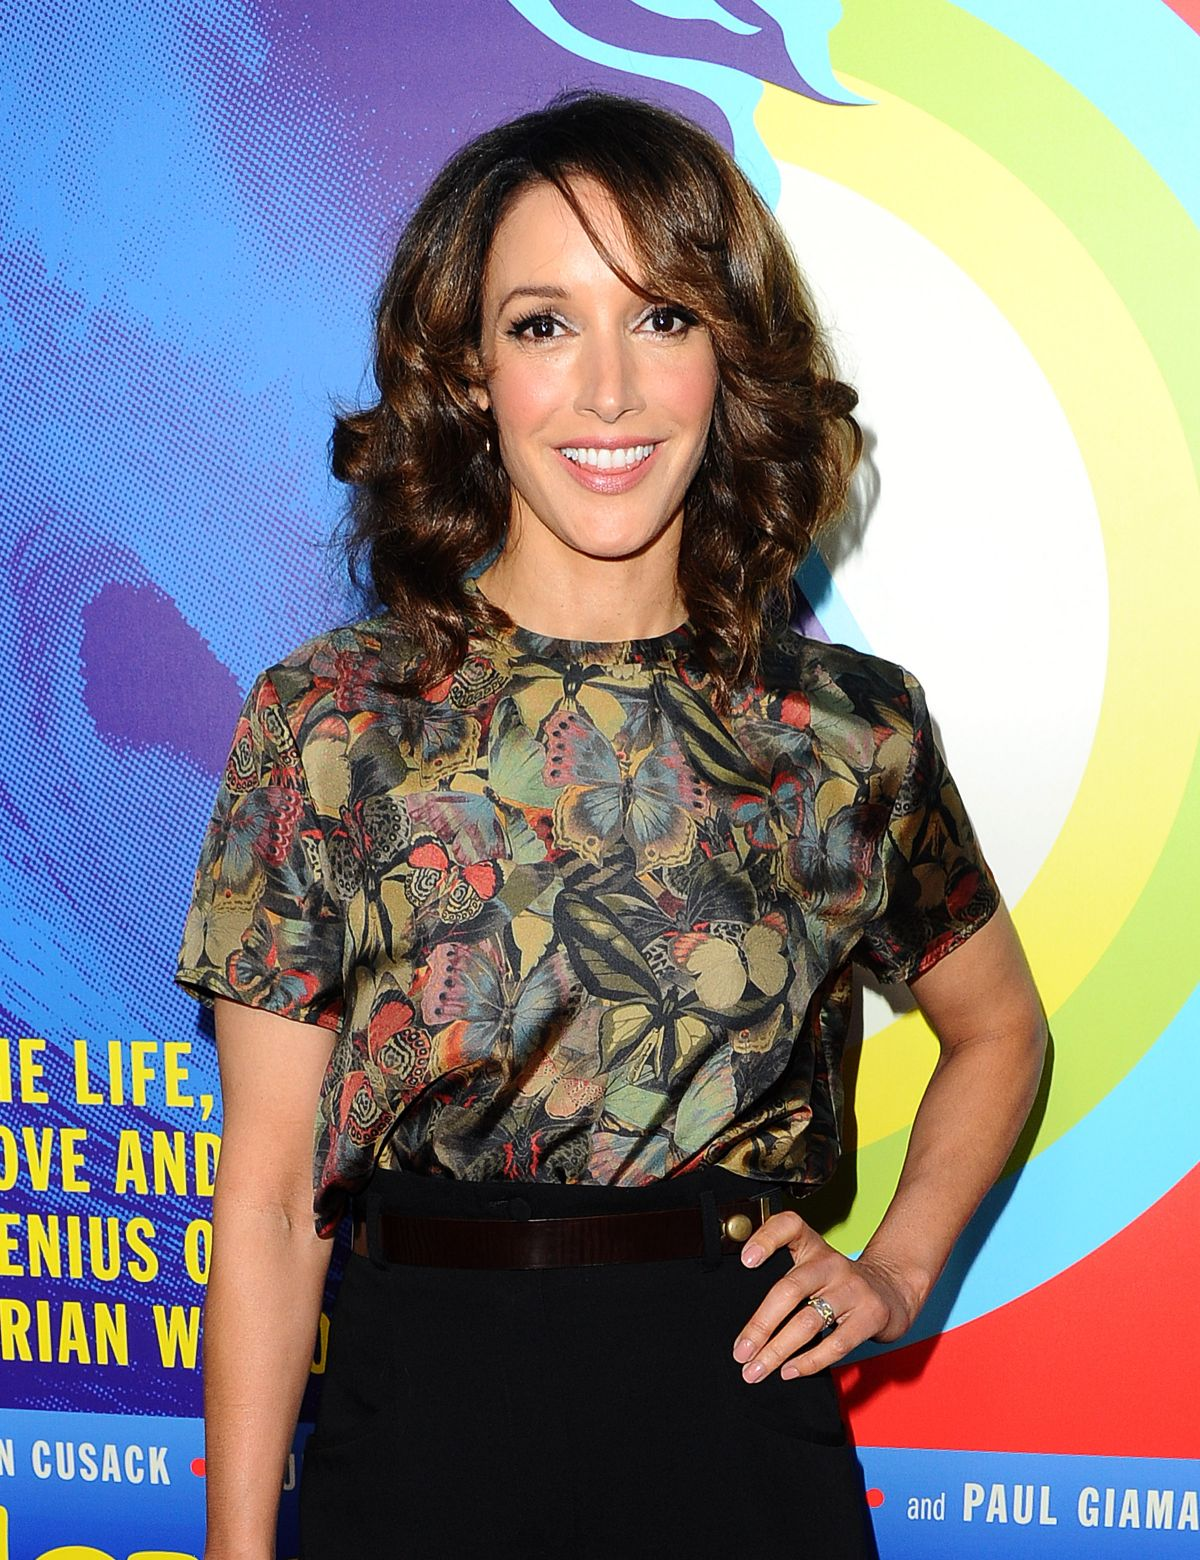 jennifer beals youngjennifer beals 2017, jennifer beals instagram, jennifer beals фото, jennifer beals info, jennifer beals young, jennifer beals daughter, jennifer beals site, jennifer beals 1983, jennifer beals flashdance maniac, jennifer beals wdw, jennifer beals t, jennifer beals house, jennifer beals maniac, jennifer beals latest news, jennifer beals age, jennifer beals toronto, jennifer beals imdb, jennifer beals the bride, jennifer beals flashdance, jennifer beals zimbio